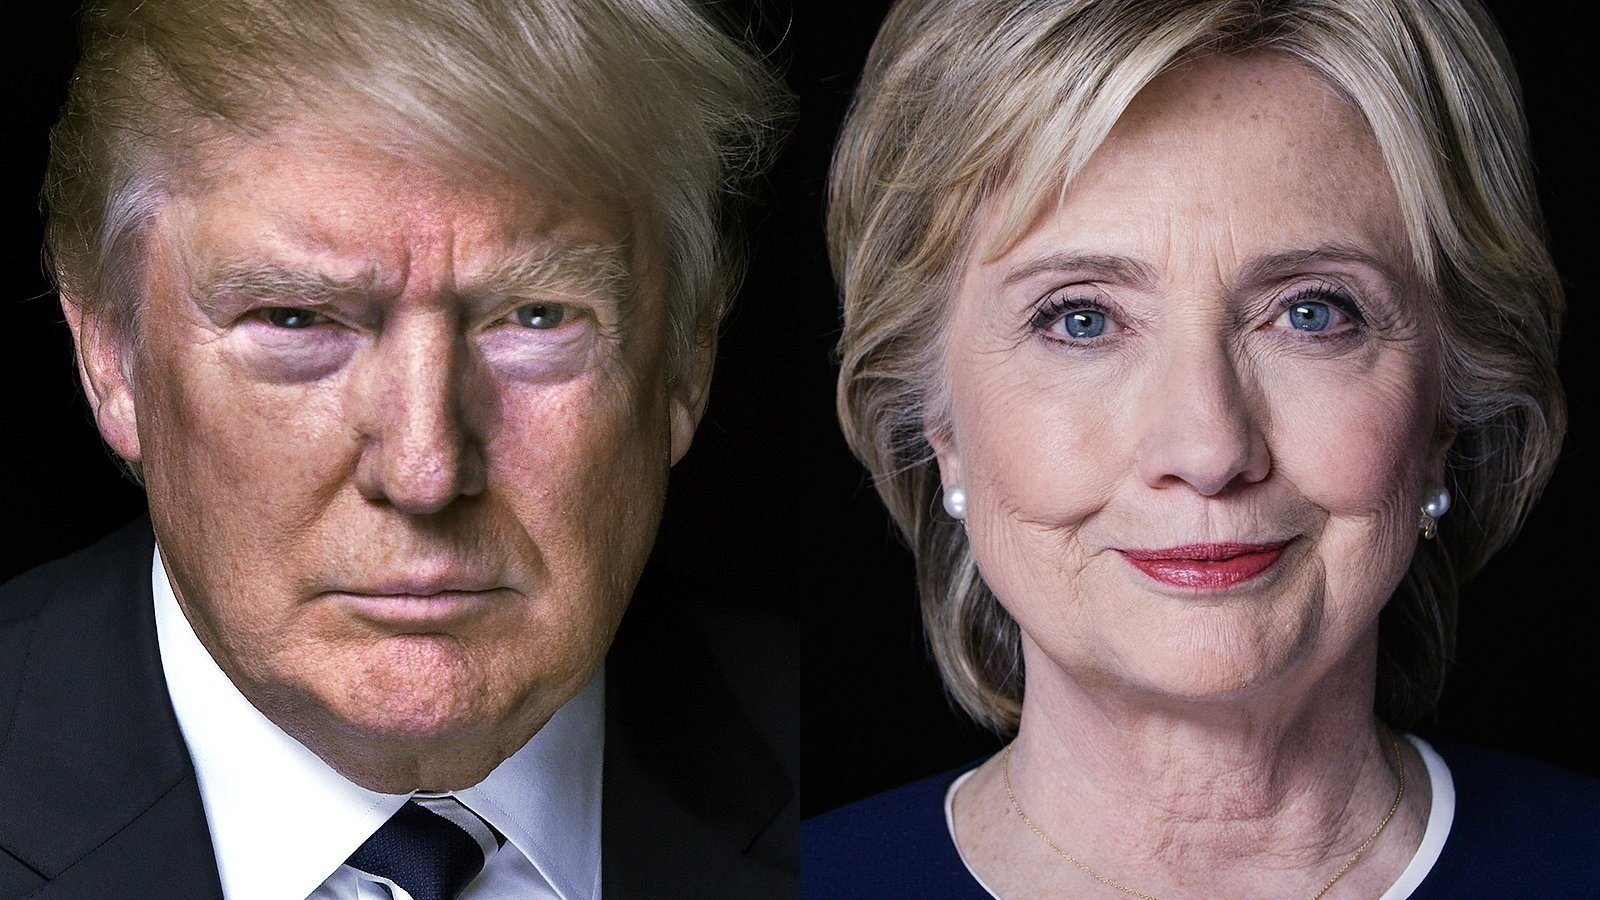 Presidential candidates Donald Trump and Hillary Clinton